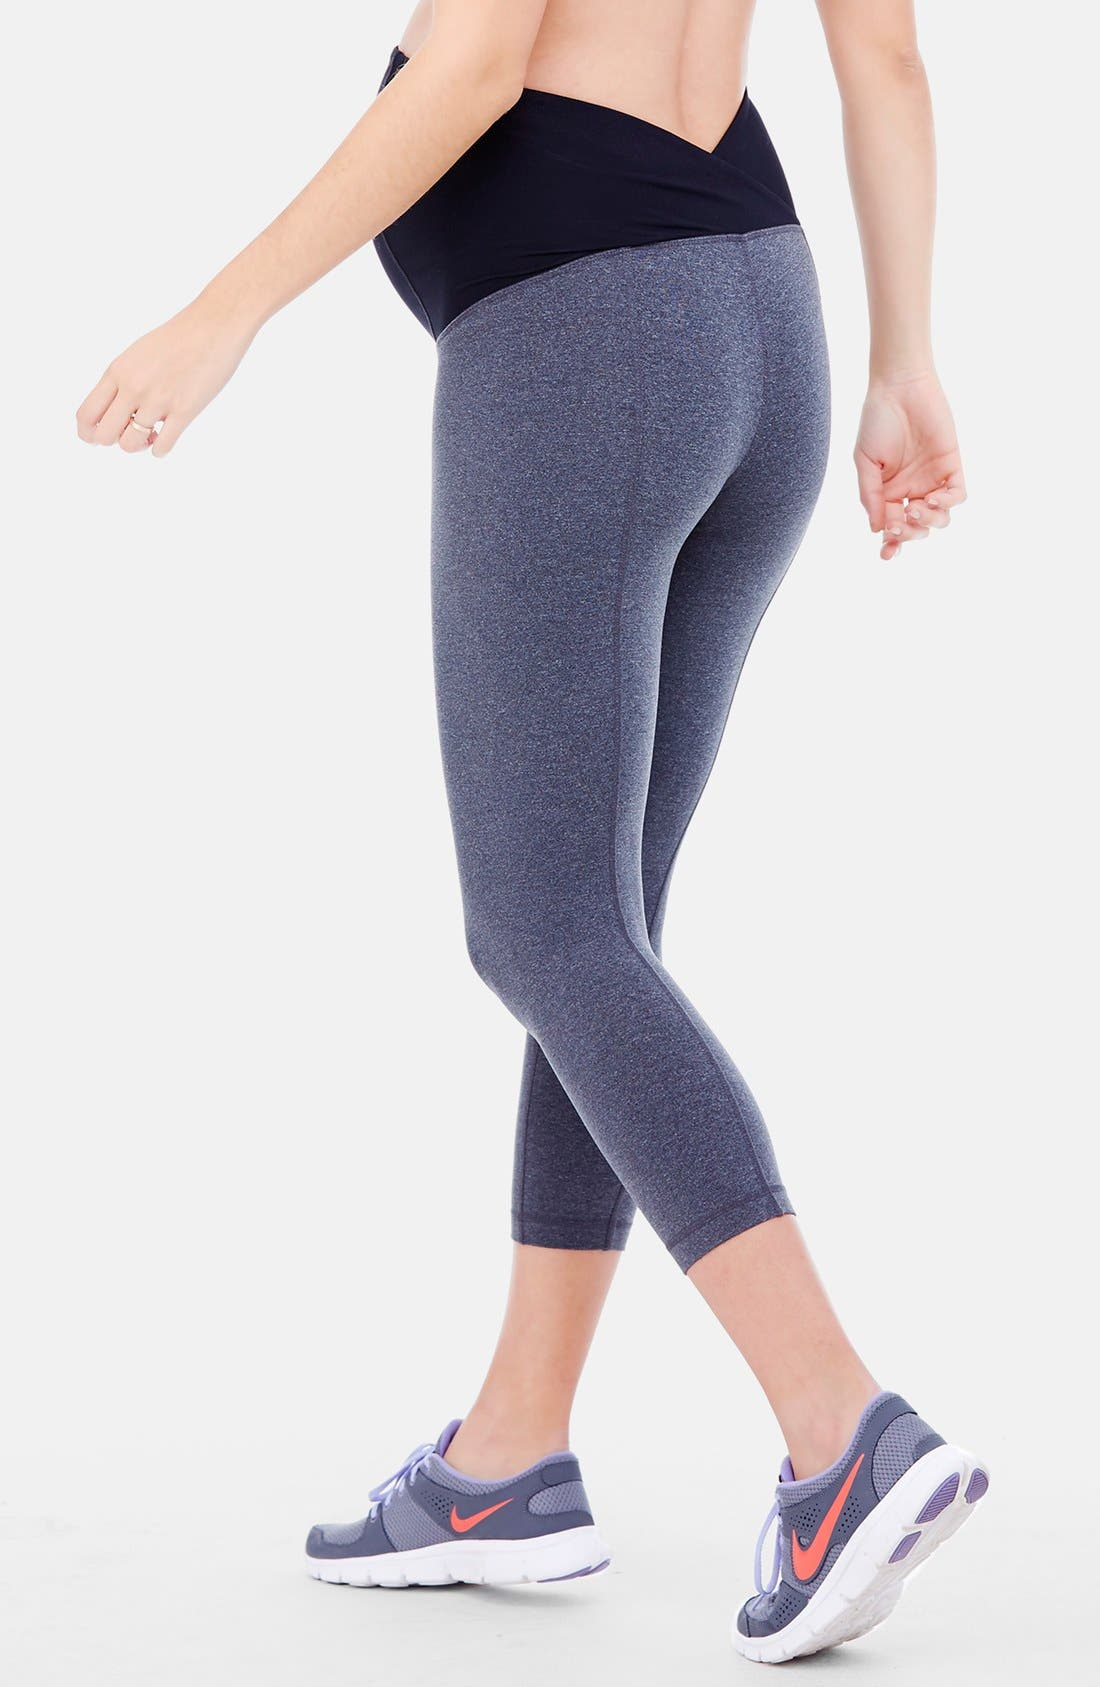 Active Maternity Capri Pants with Crossover Panel,                             Alternate thumbnail 4, color,                             Dark Heather Grey